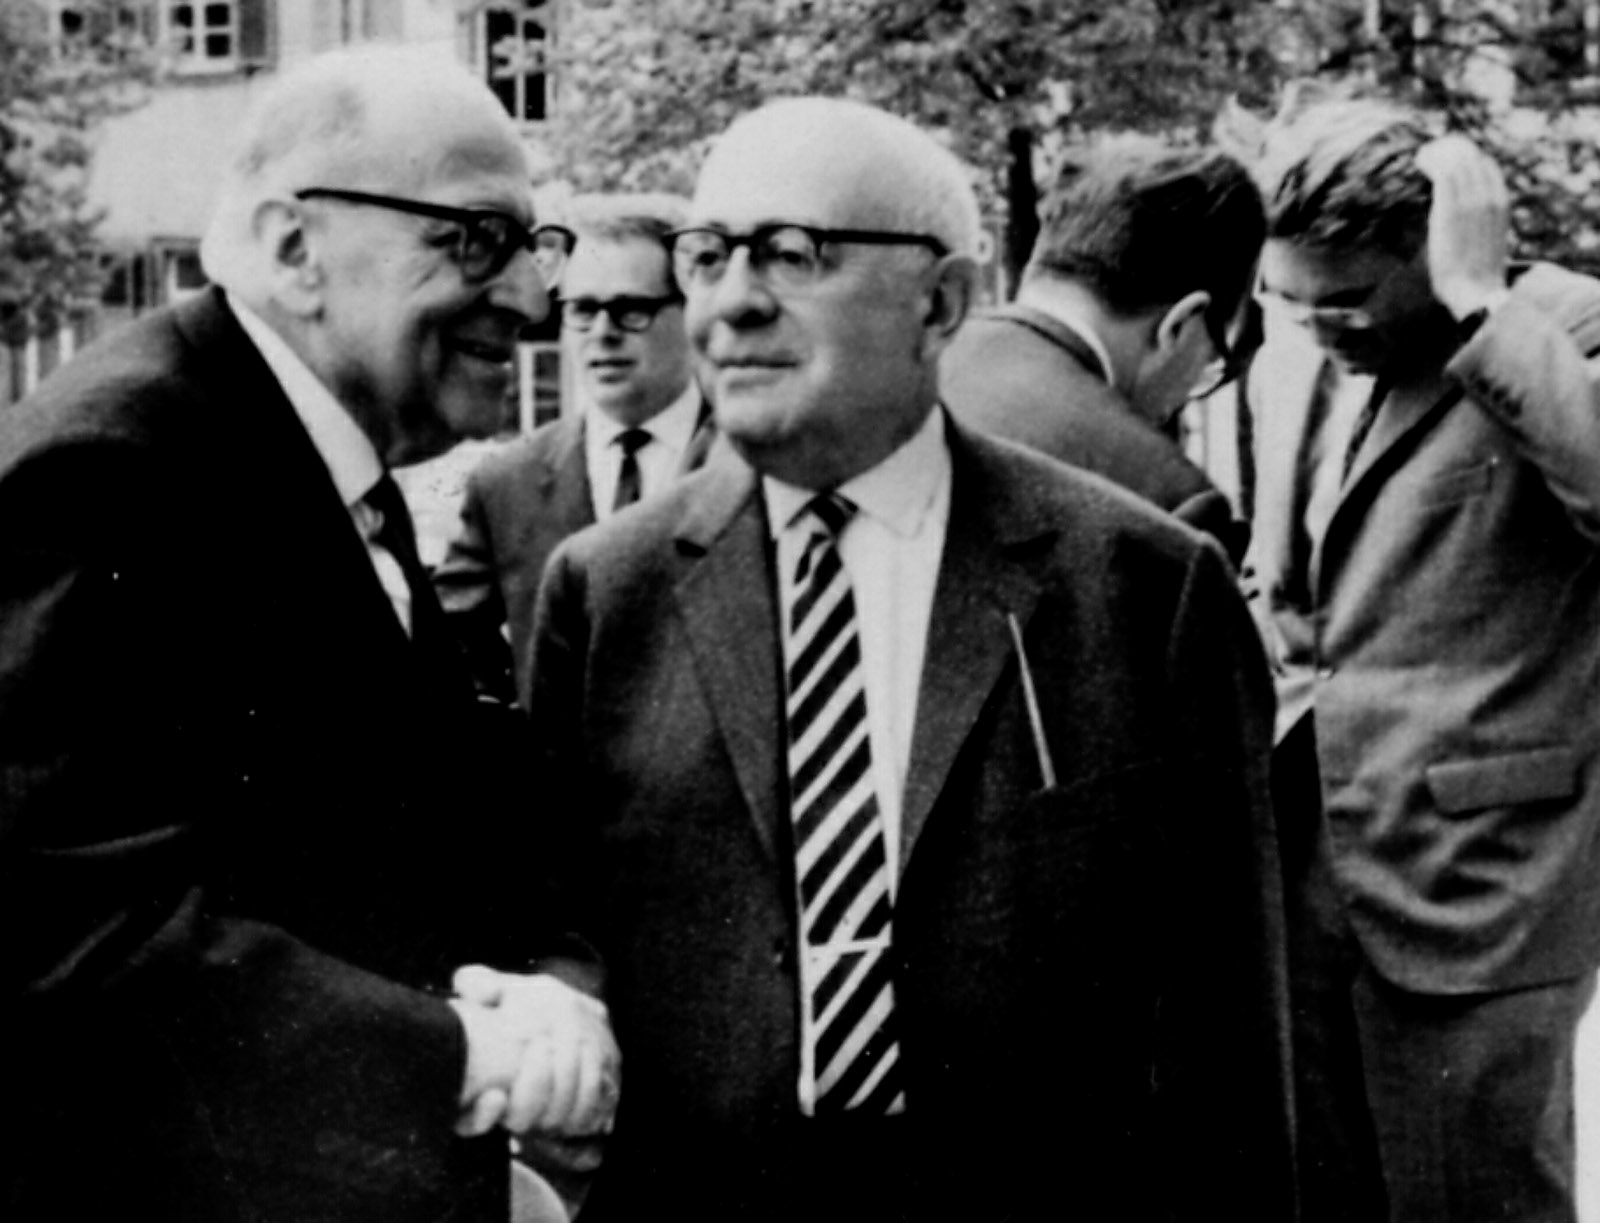 Max Horkheimer and Theodor Adorno (in foreground) with Jürgen Habermas (far right), Heidelberg, April 1964